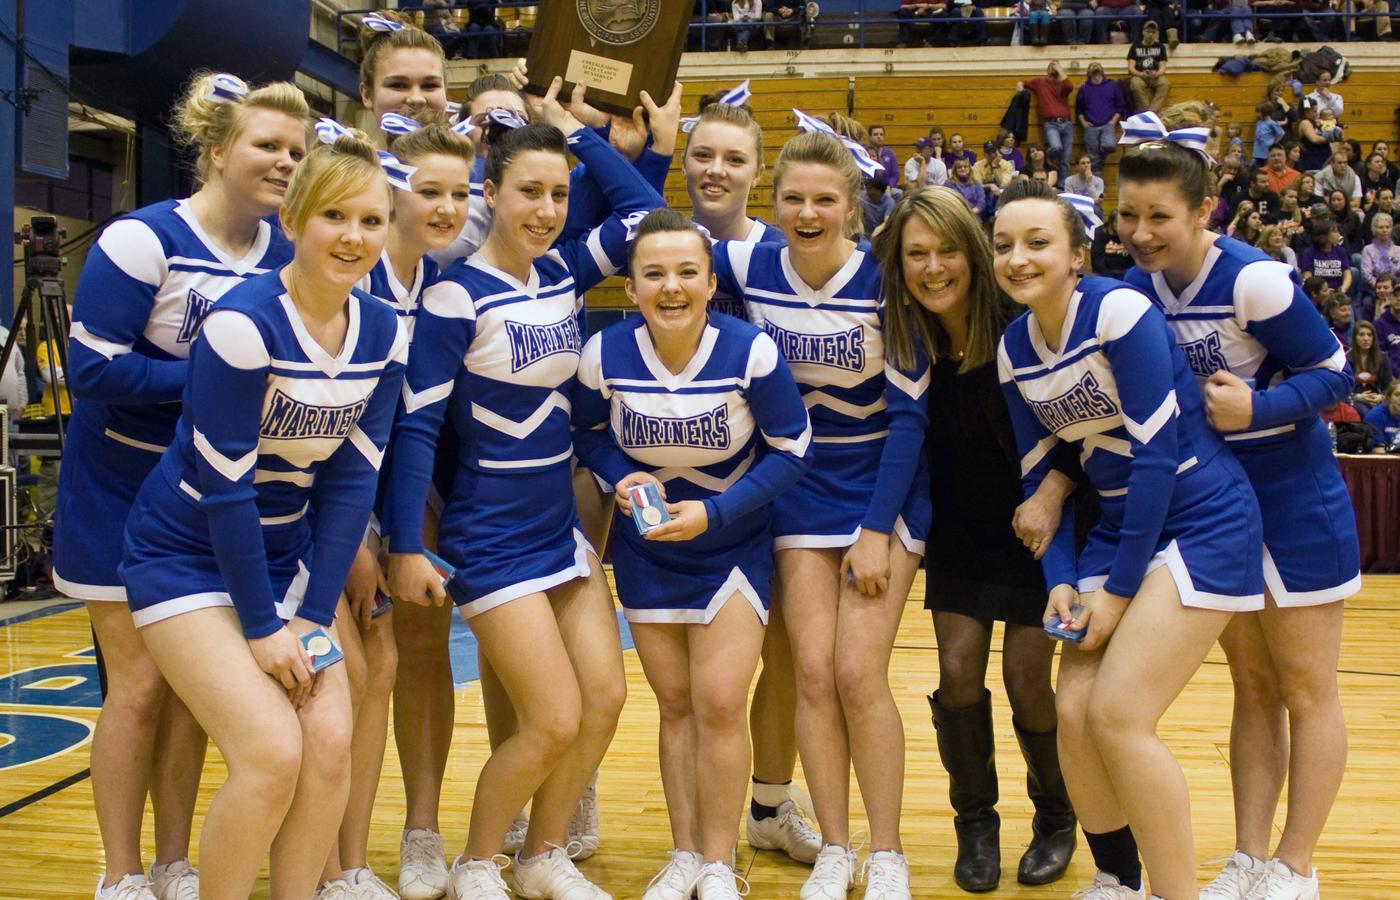 DIS Cheerleaders take runner-up position in state